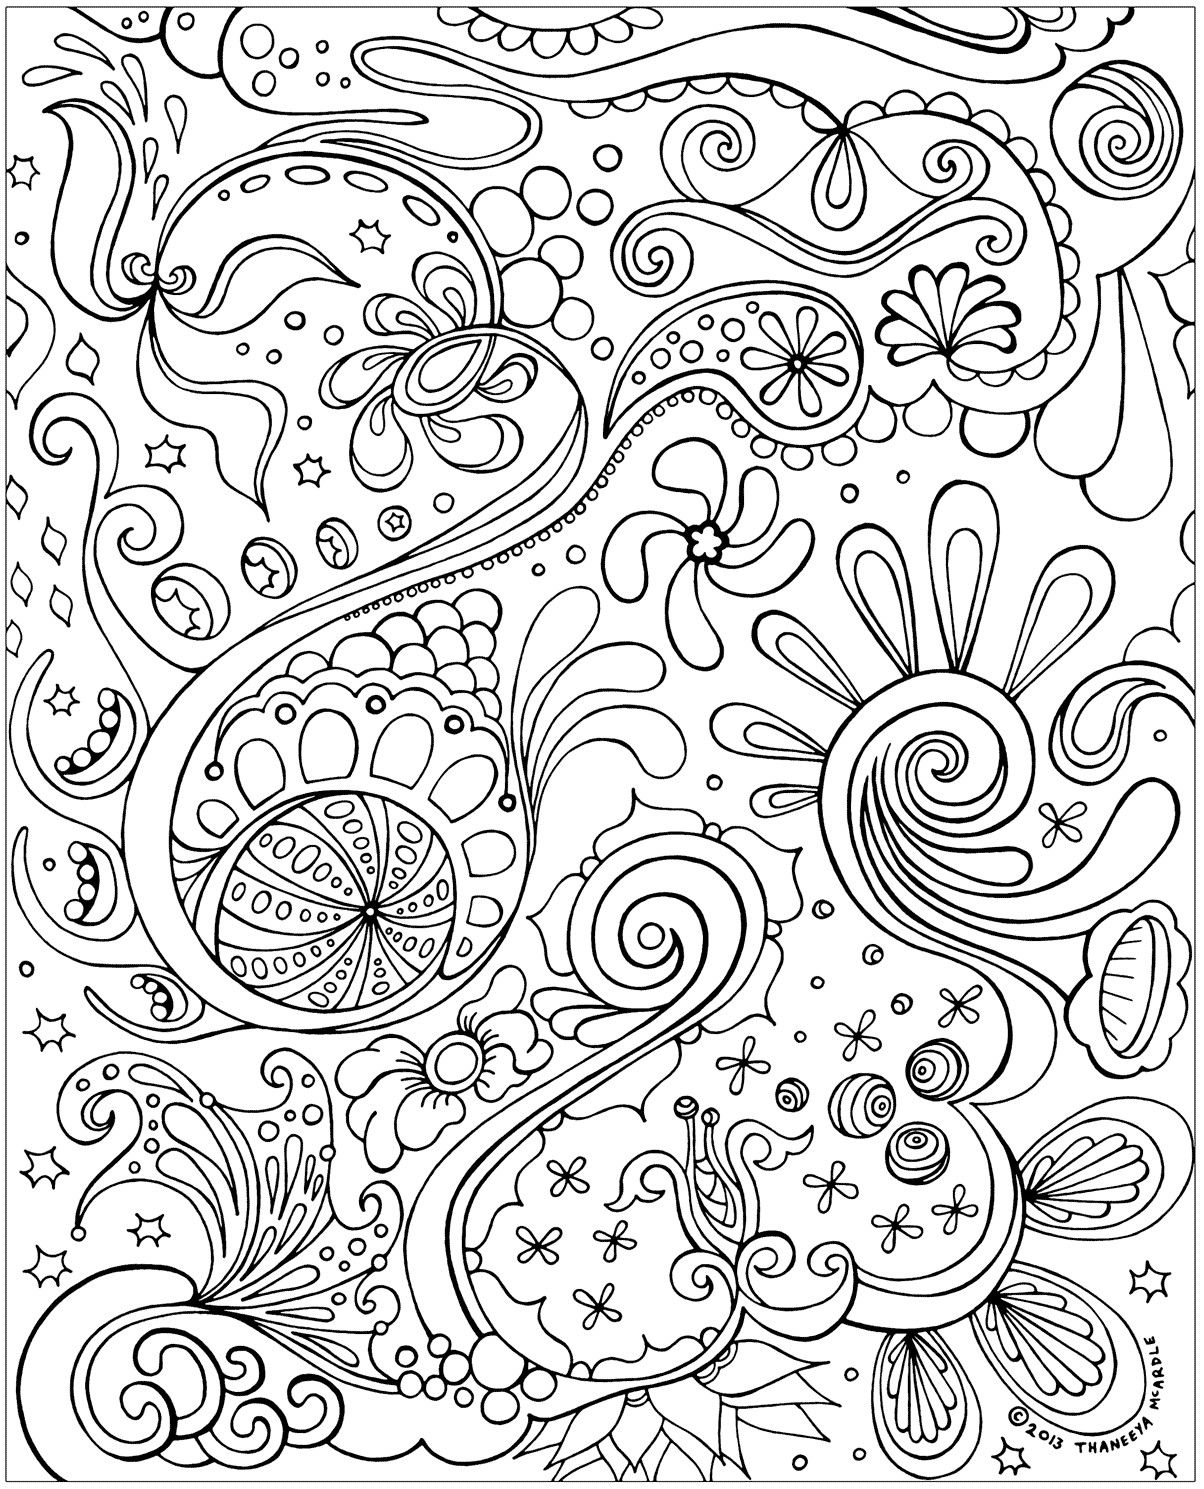 Free coloring pages for adults abstract - Free Adult Coloring Pages To Print And Color Featuring The Detailed Art Of Thaneeya Mcardle Published Coloring Book Artist These Printable Coloring Pages